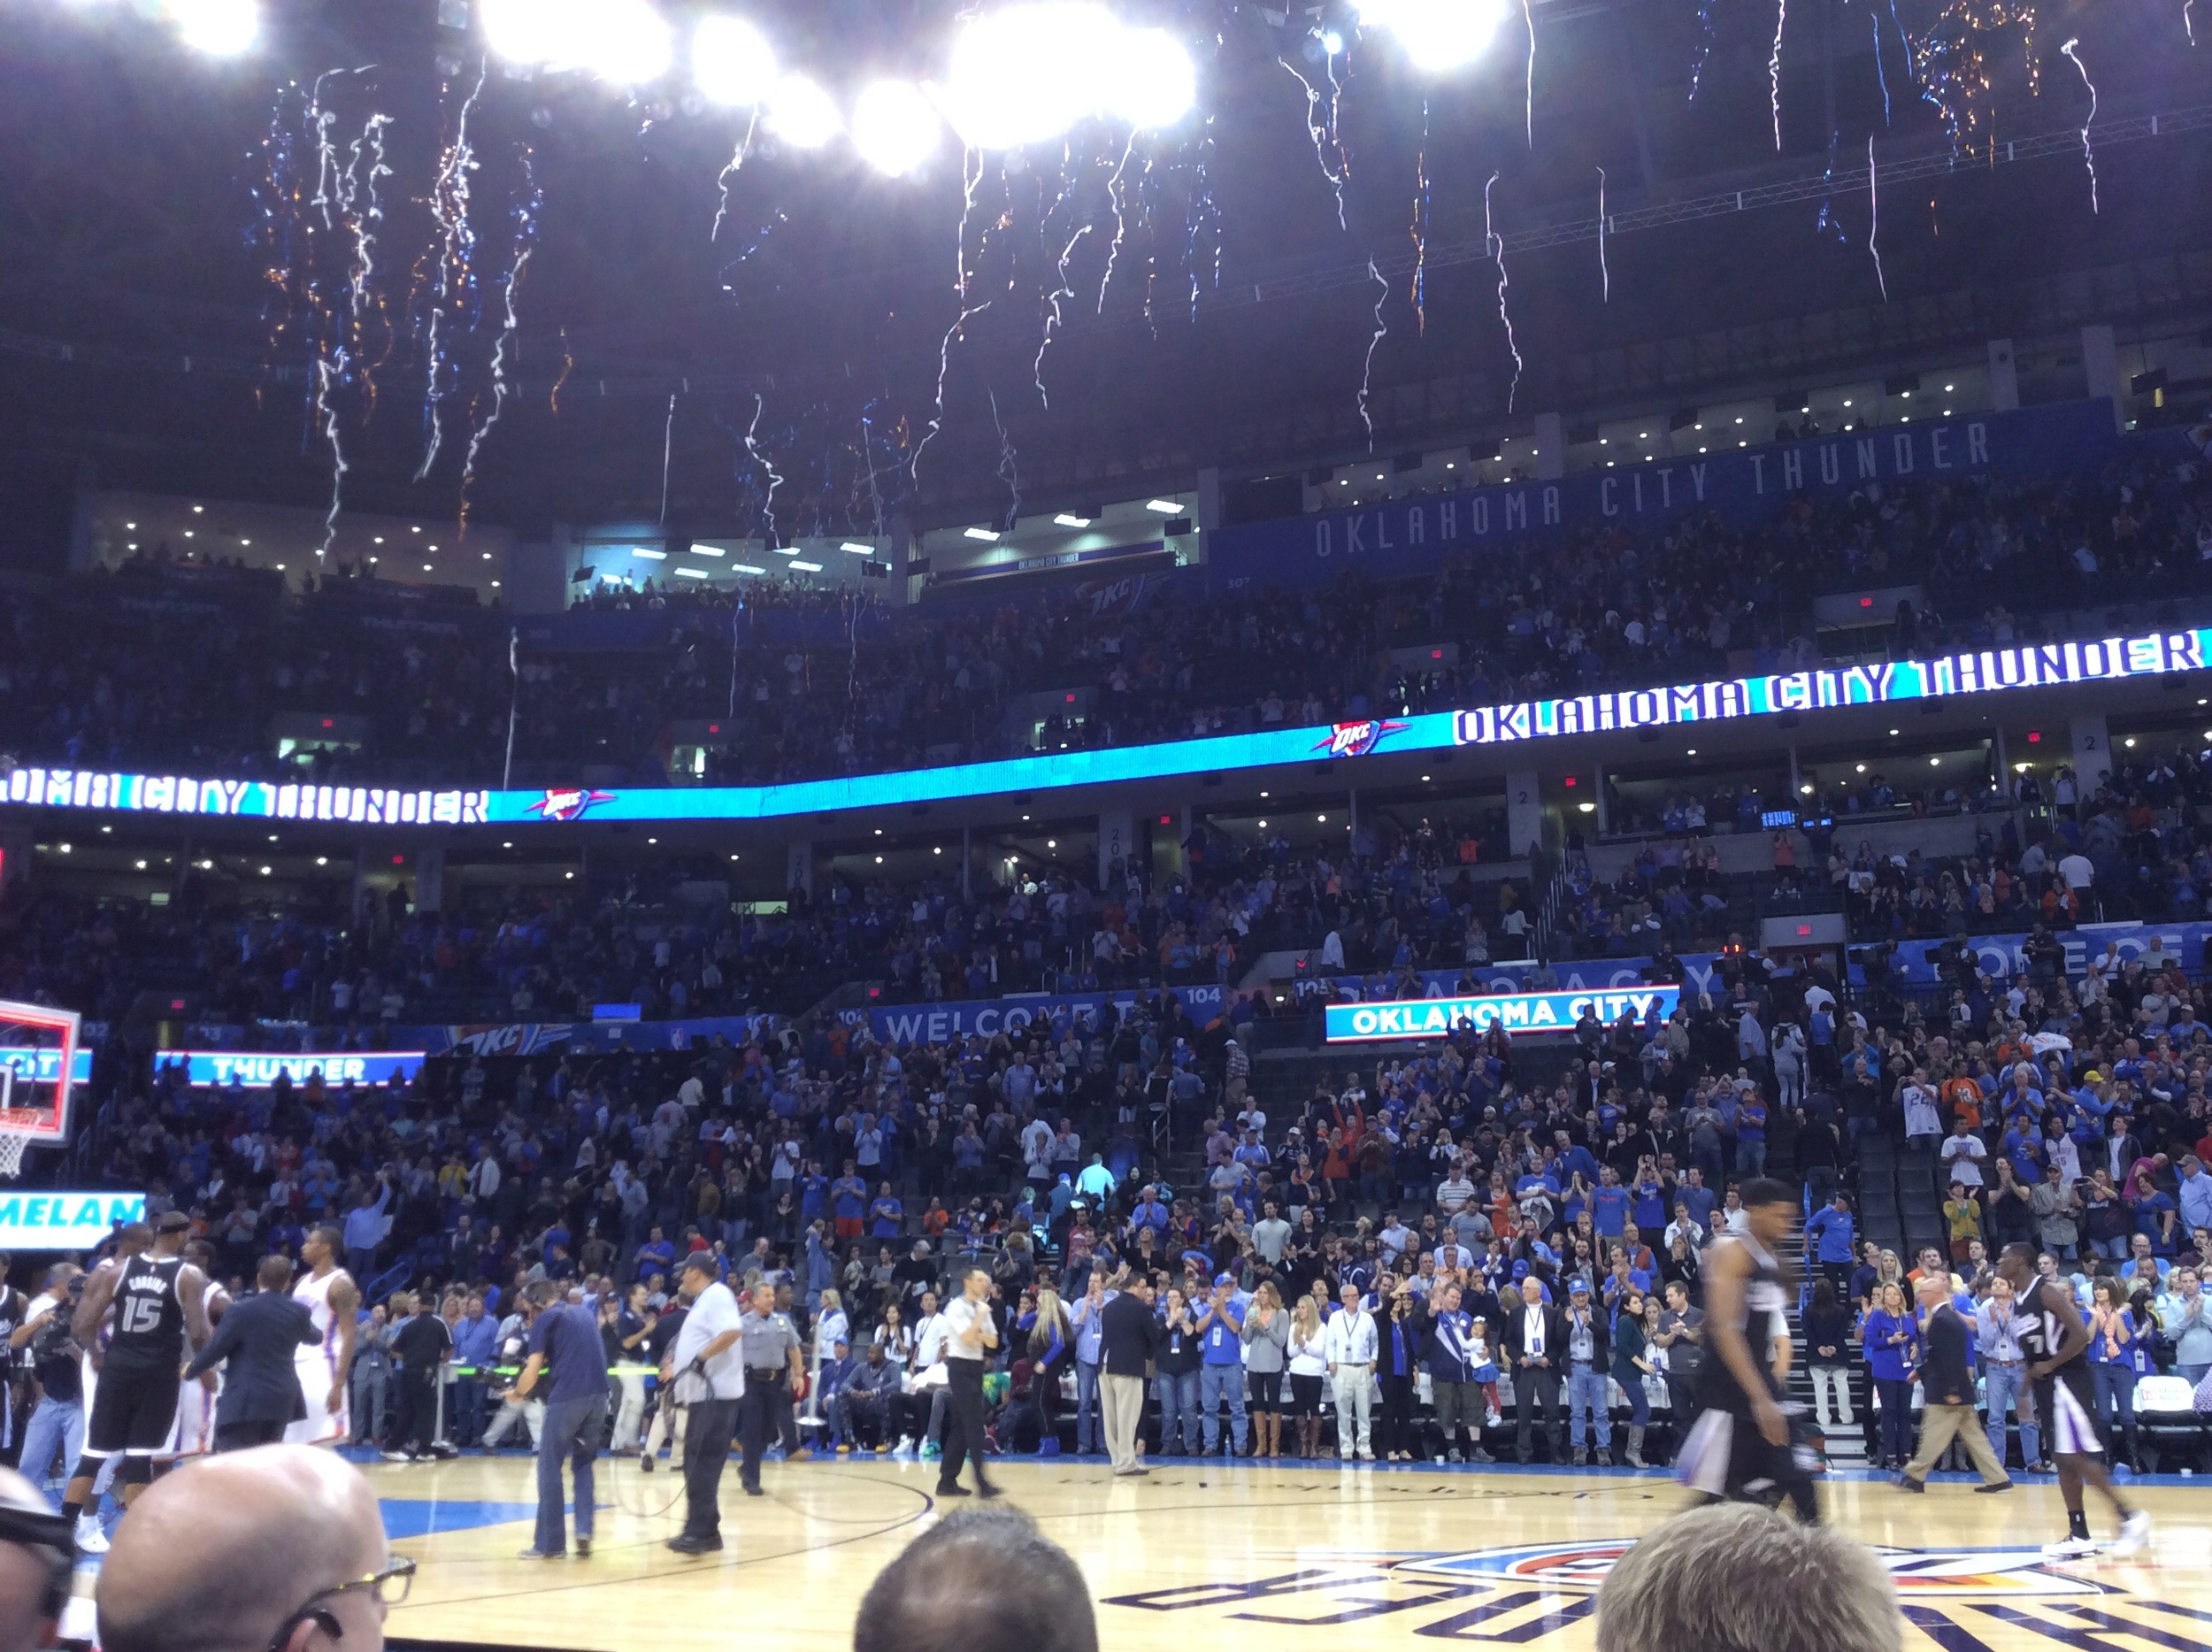 Streamers fall from the rafters at Chesapeake Energy Arena as the Thunder beat Sacramento Sunday night. Photo by Randy Renner for InsideThunder.com